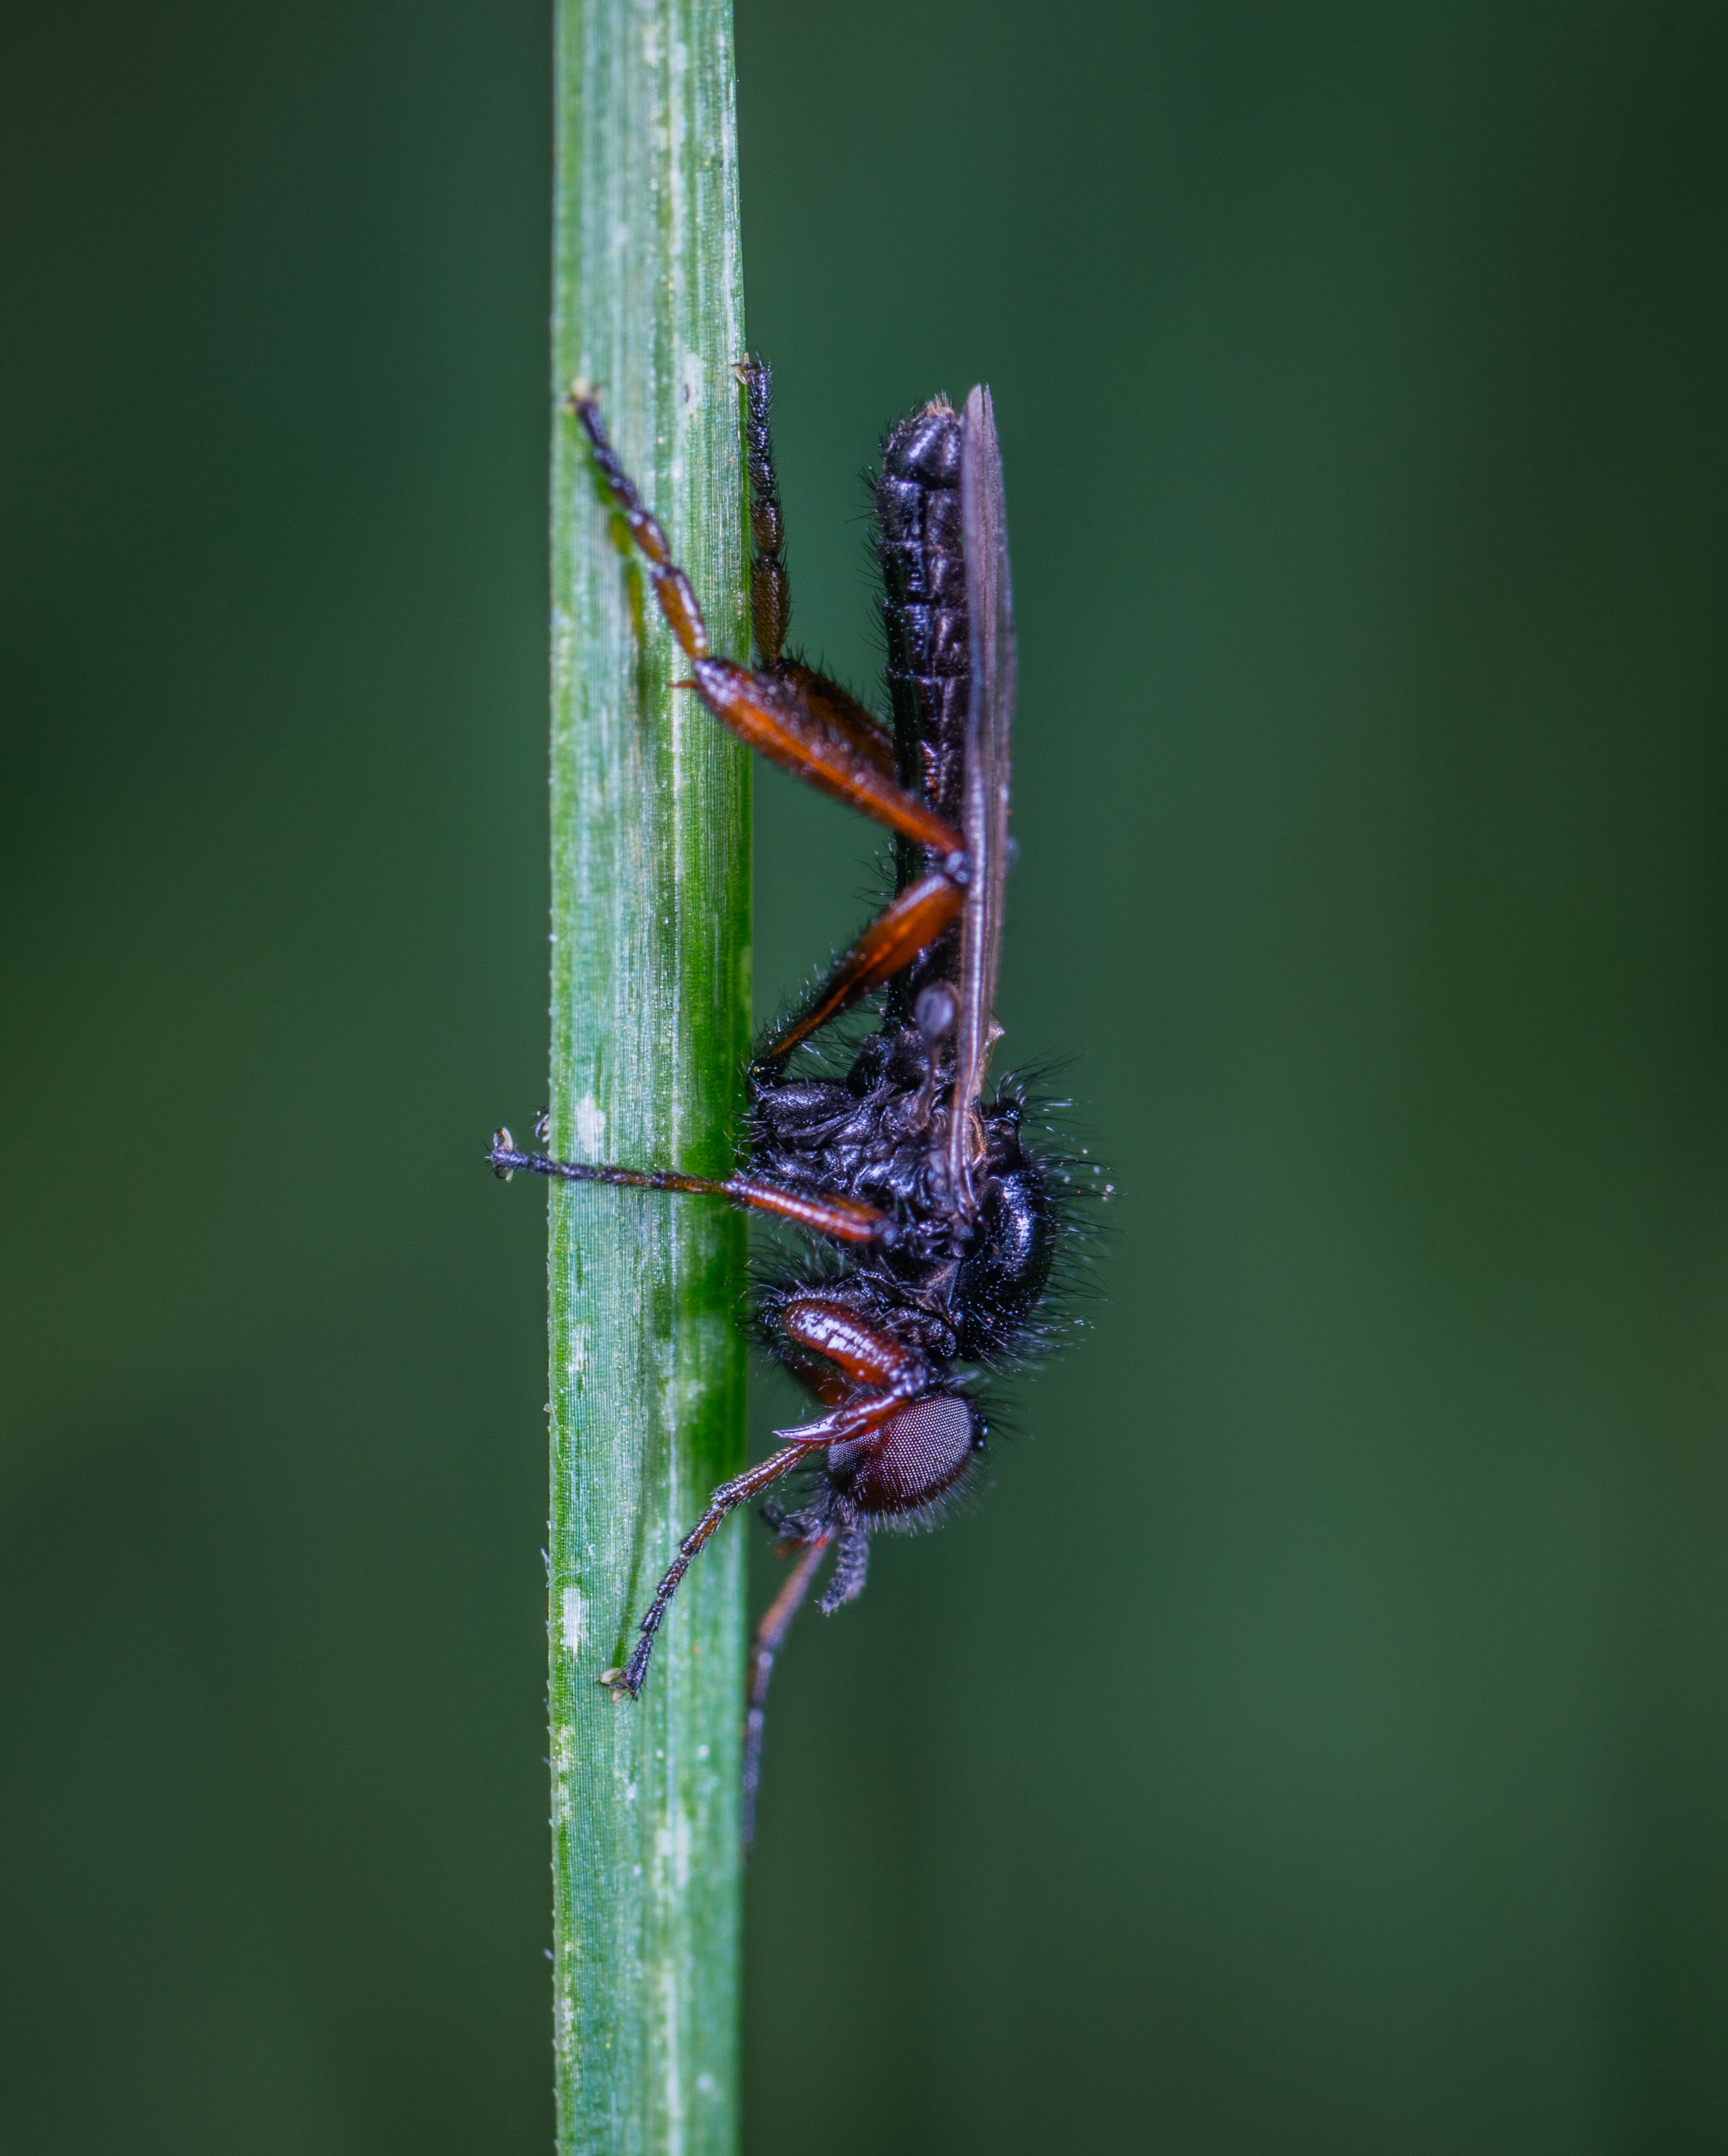 Black and Brown Robber Fly